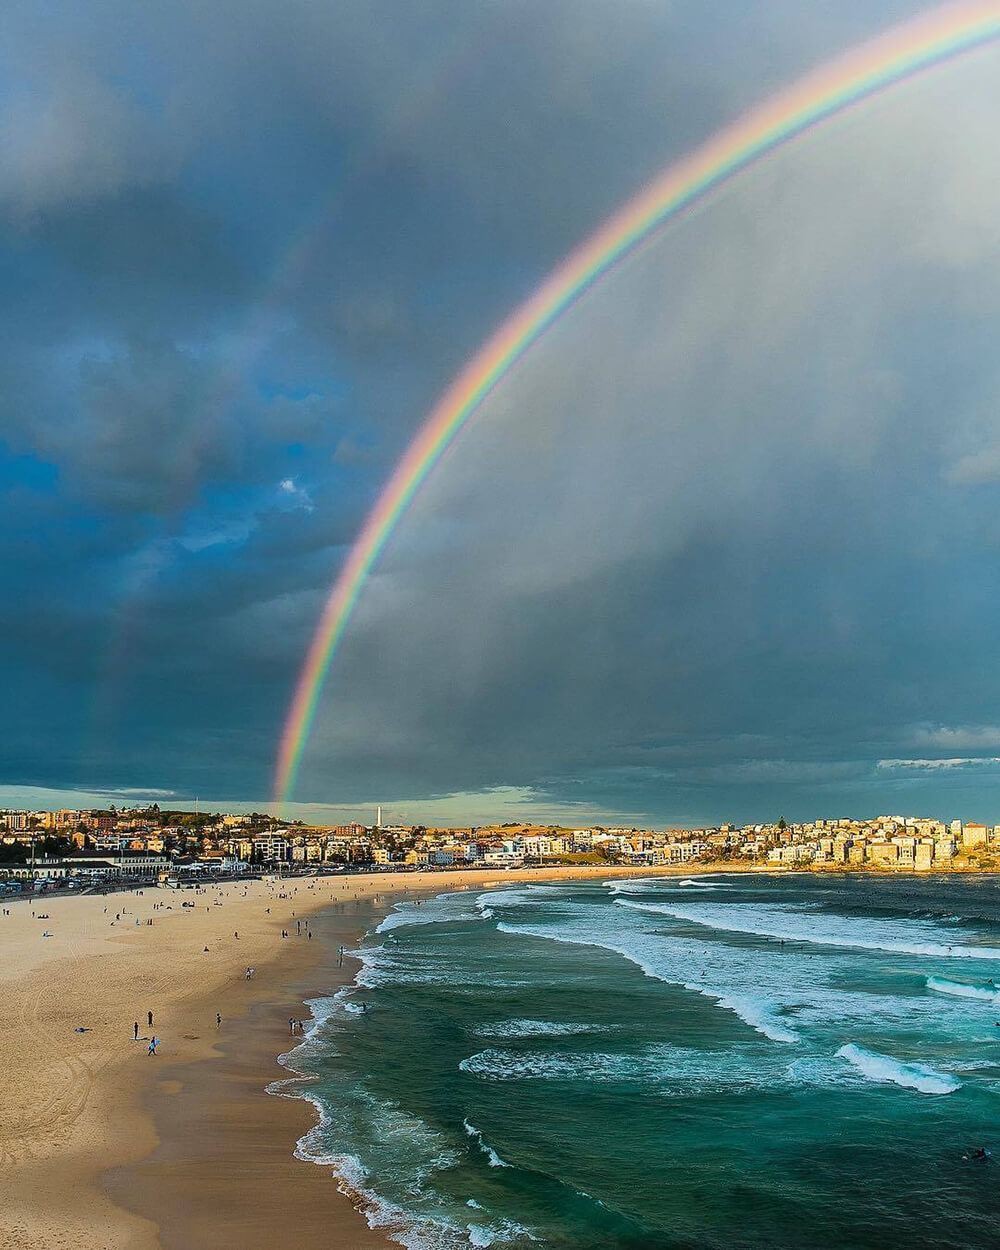 Landscape image of rainbow at beach